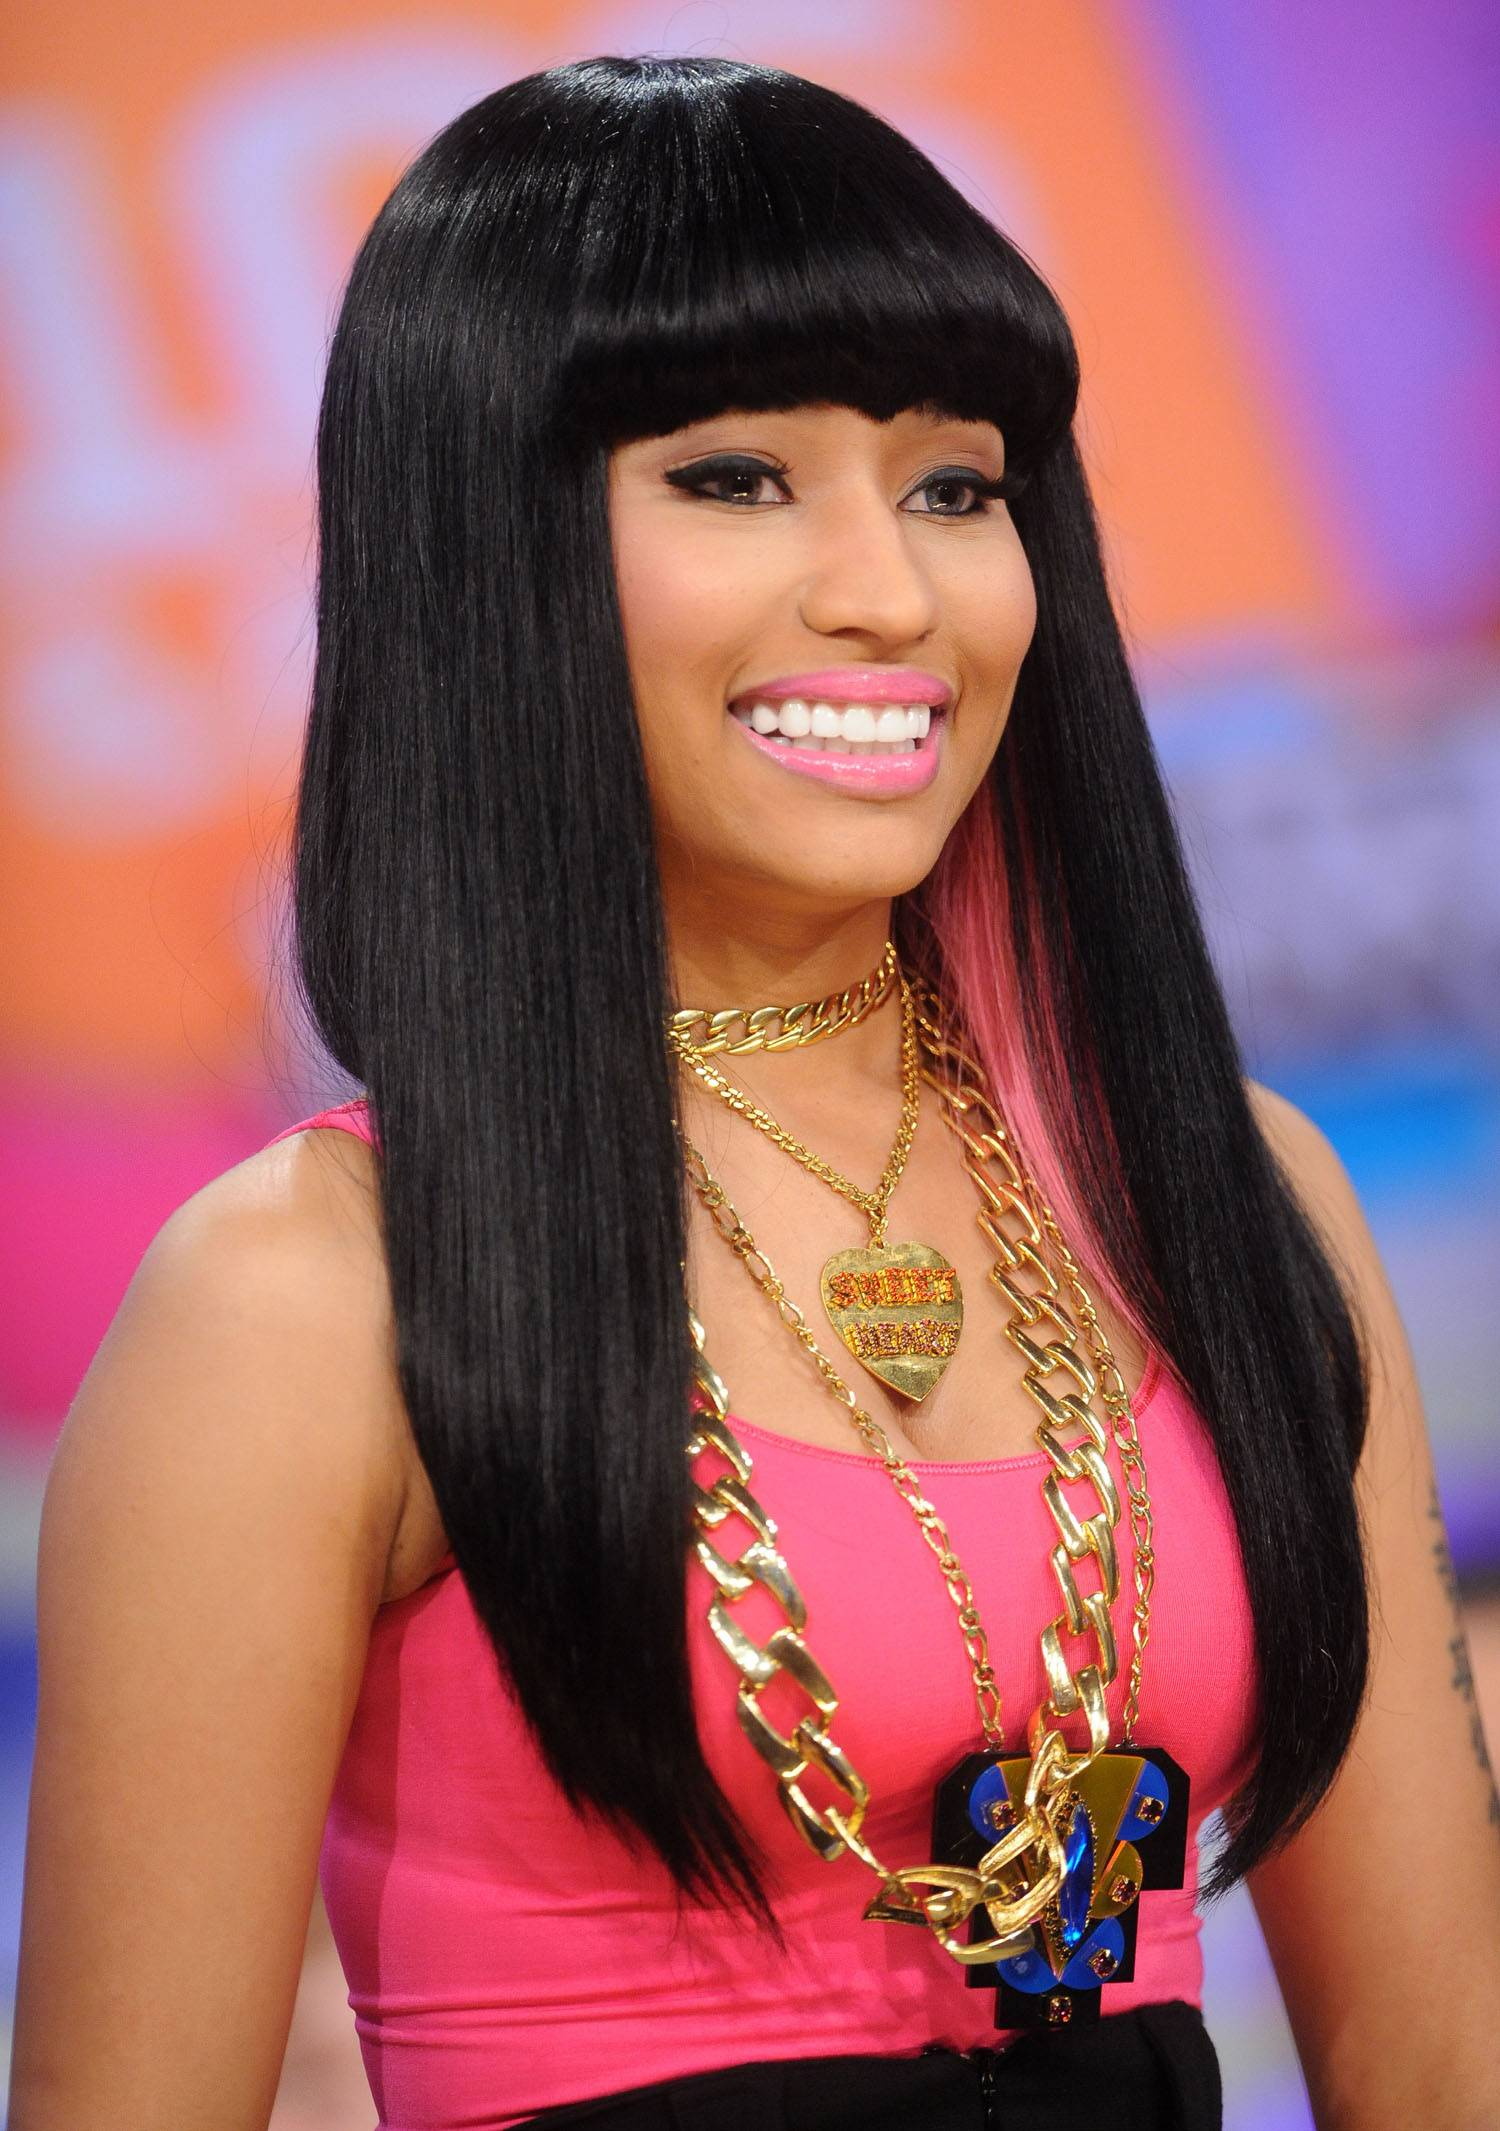 """First Things First - Nicki Minaj is not only the first lady of Young Money, she's a trailblazer who has set precedents in her short career. Her latest chart-breaker came this week when she became the first woman to simultaneously have four songs in the top 10 of Billboard?sMainstream R&B/Hip-Hop Chart. The crowning moment came after her smash ?Truffle Butter,? with Lil Wayne and Drake, took the top spot.""""Truffle Butter"""" is joined by """"Only,"""" her collaboration with Beyonc?called """"Feeling Myself"""" and her assist on Rae Sremmurd's""""Throw Some Mo.""""Check out more of her pinkprint to success.(Photo: Brad Barket/PictureGroup)"""